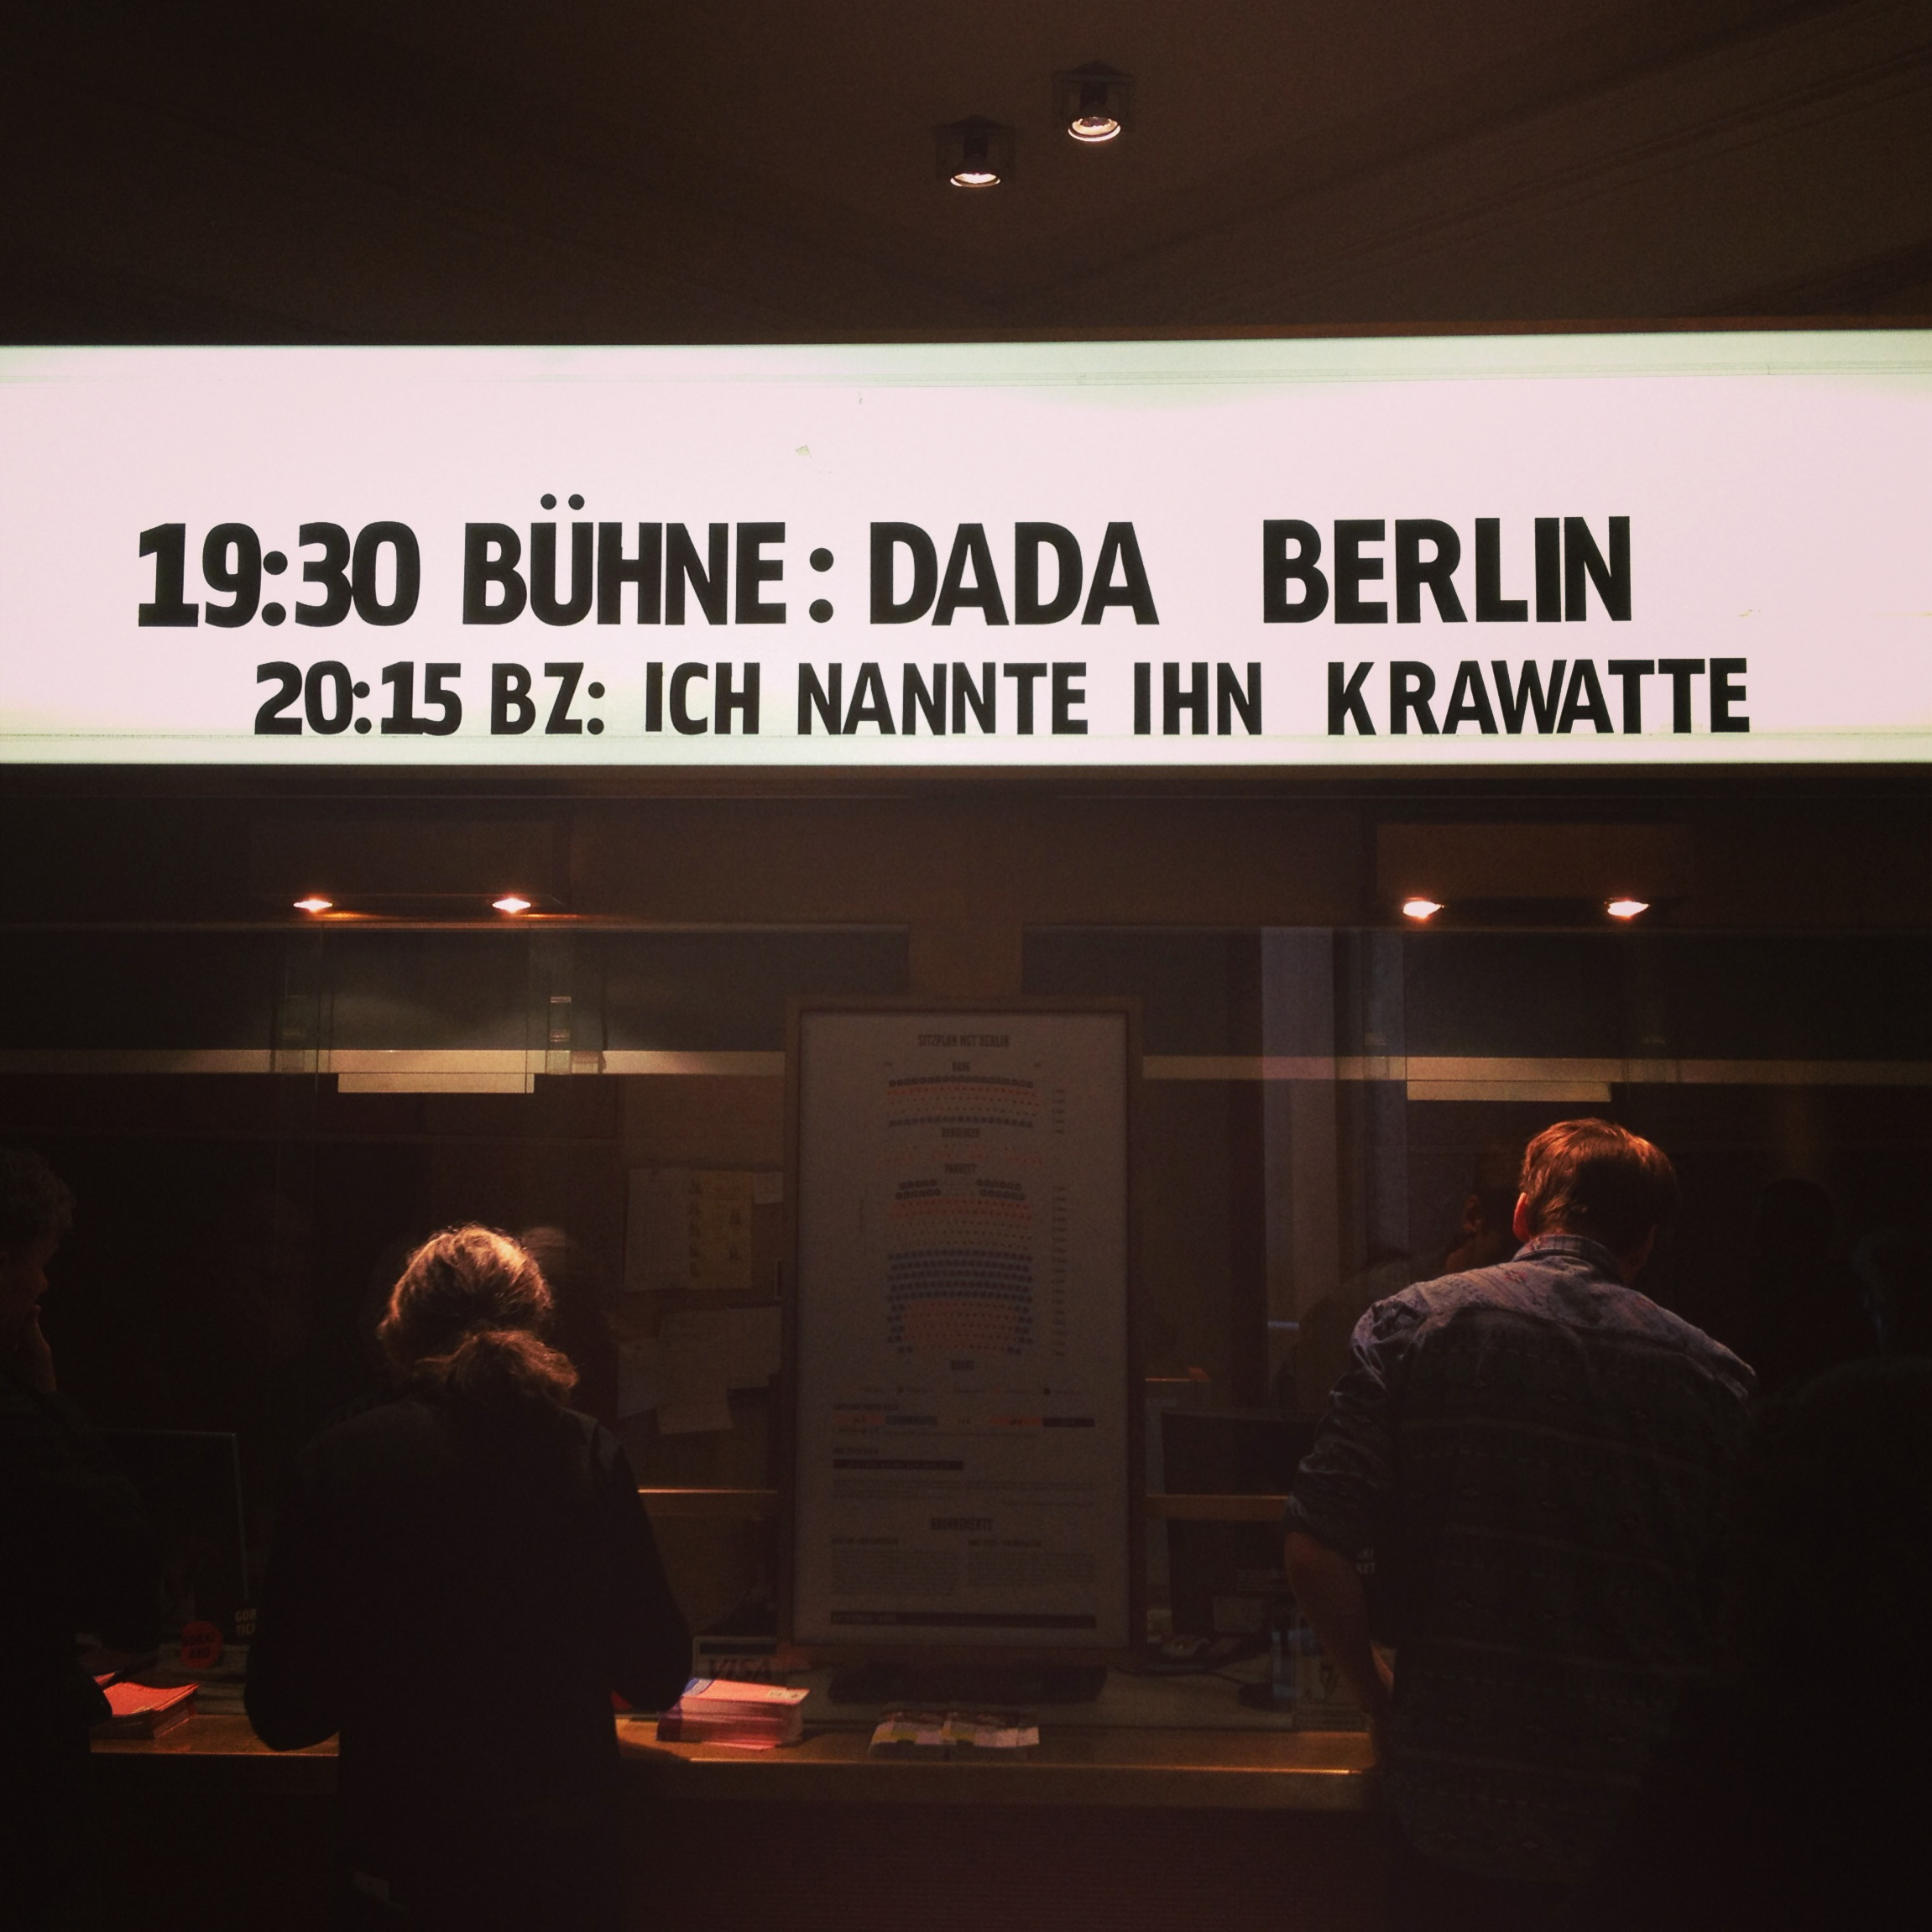 Dada Berlin Maxim Gorki Theater